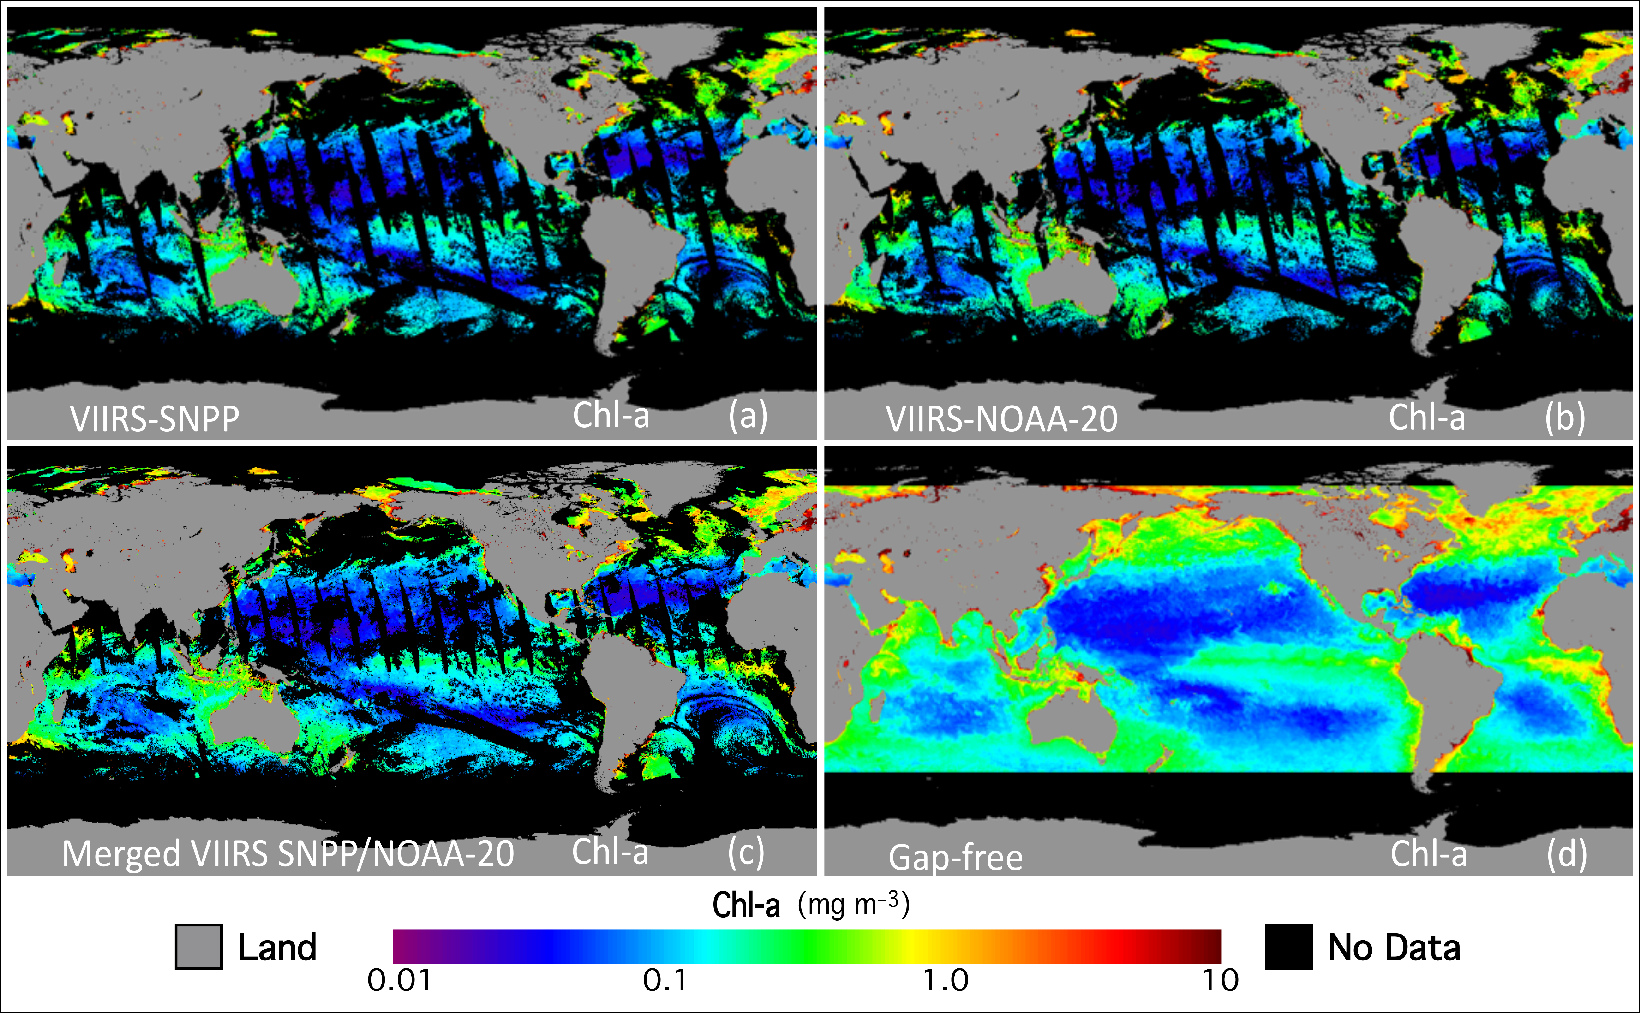 Sequence of global maps of chlorophyll a concentration on 29 July 2019 showing the effects of gap-filling data processing